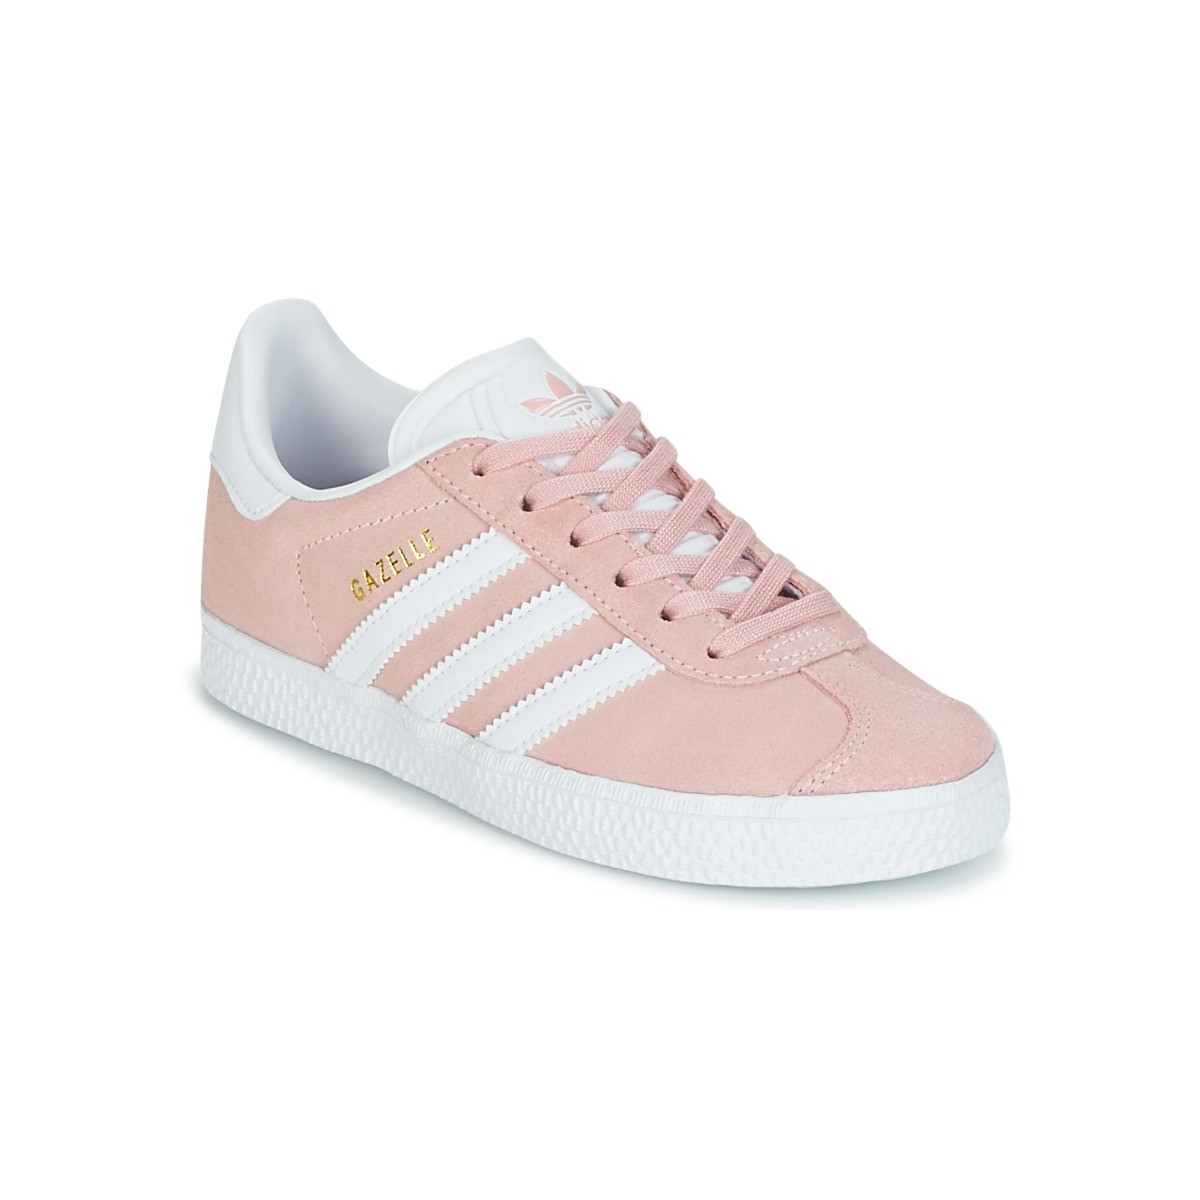 adidas gazelle fille rose scratch